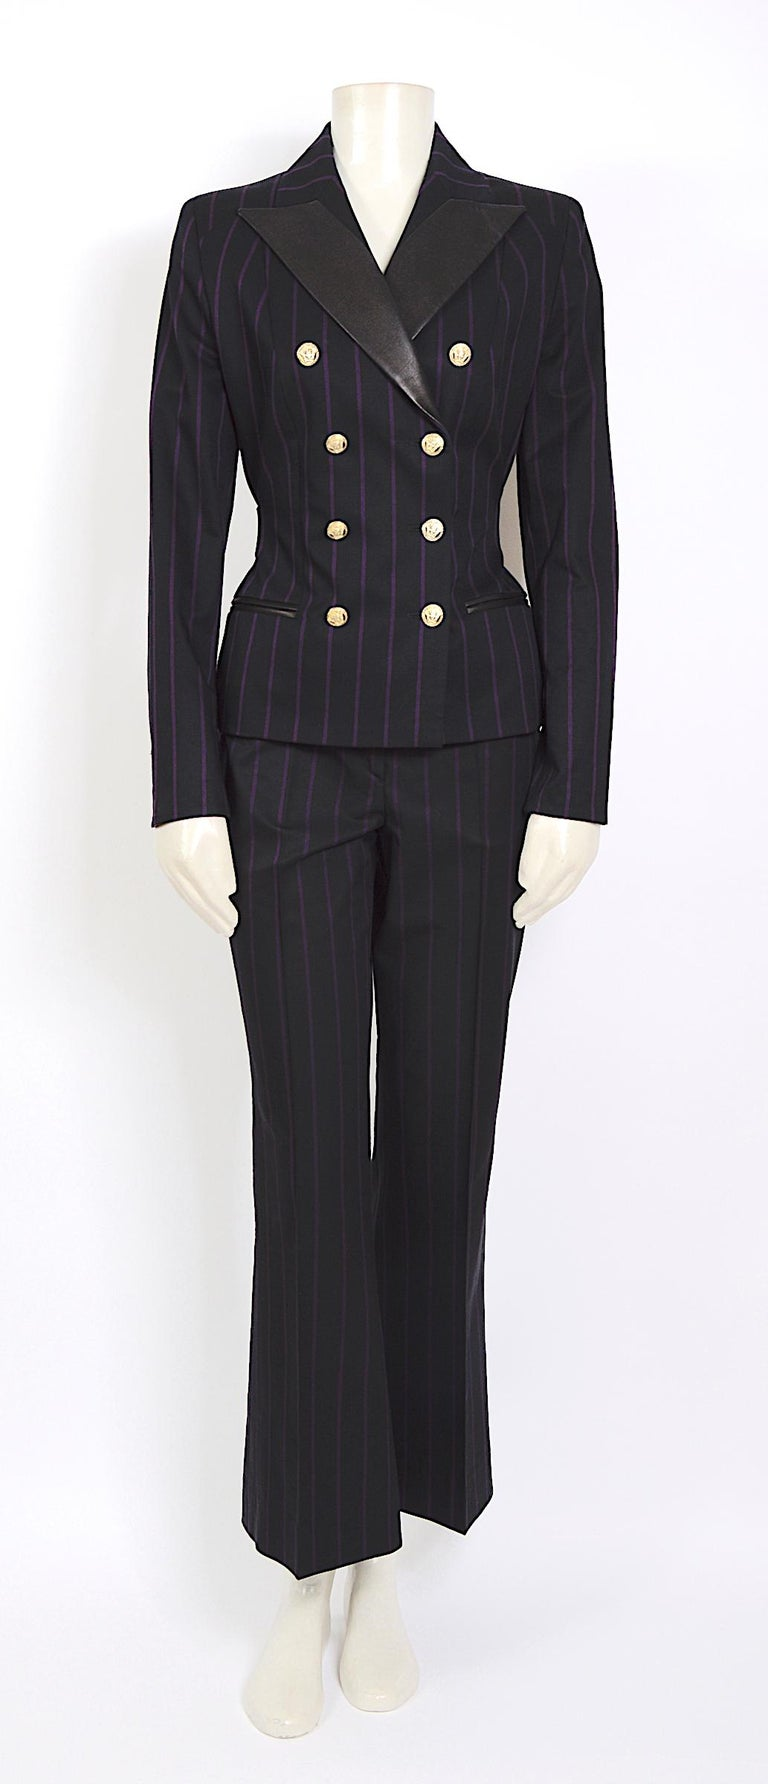 Vintage 1990s Gianni Versace purple striped black suit. made in a mix of 57% wool 42% silk & 2% elastane and leather details at the back/sleeves/collar and the waistband of the trousers The leather backstrap was pinned on the doll for a more fitted